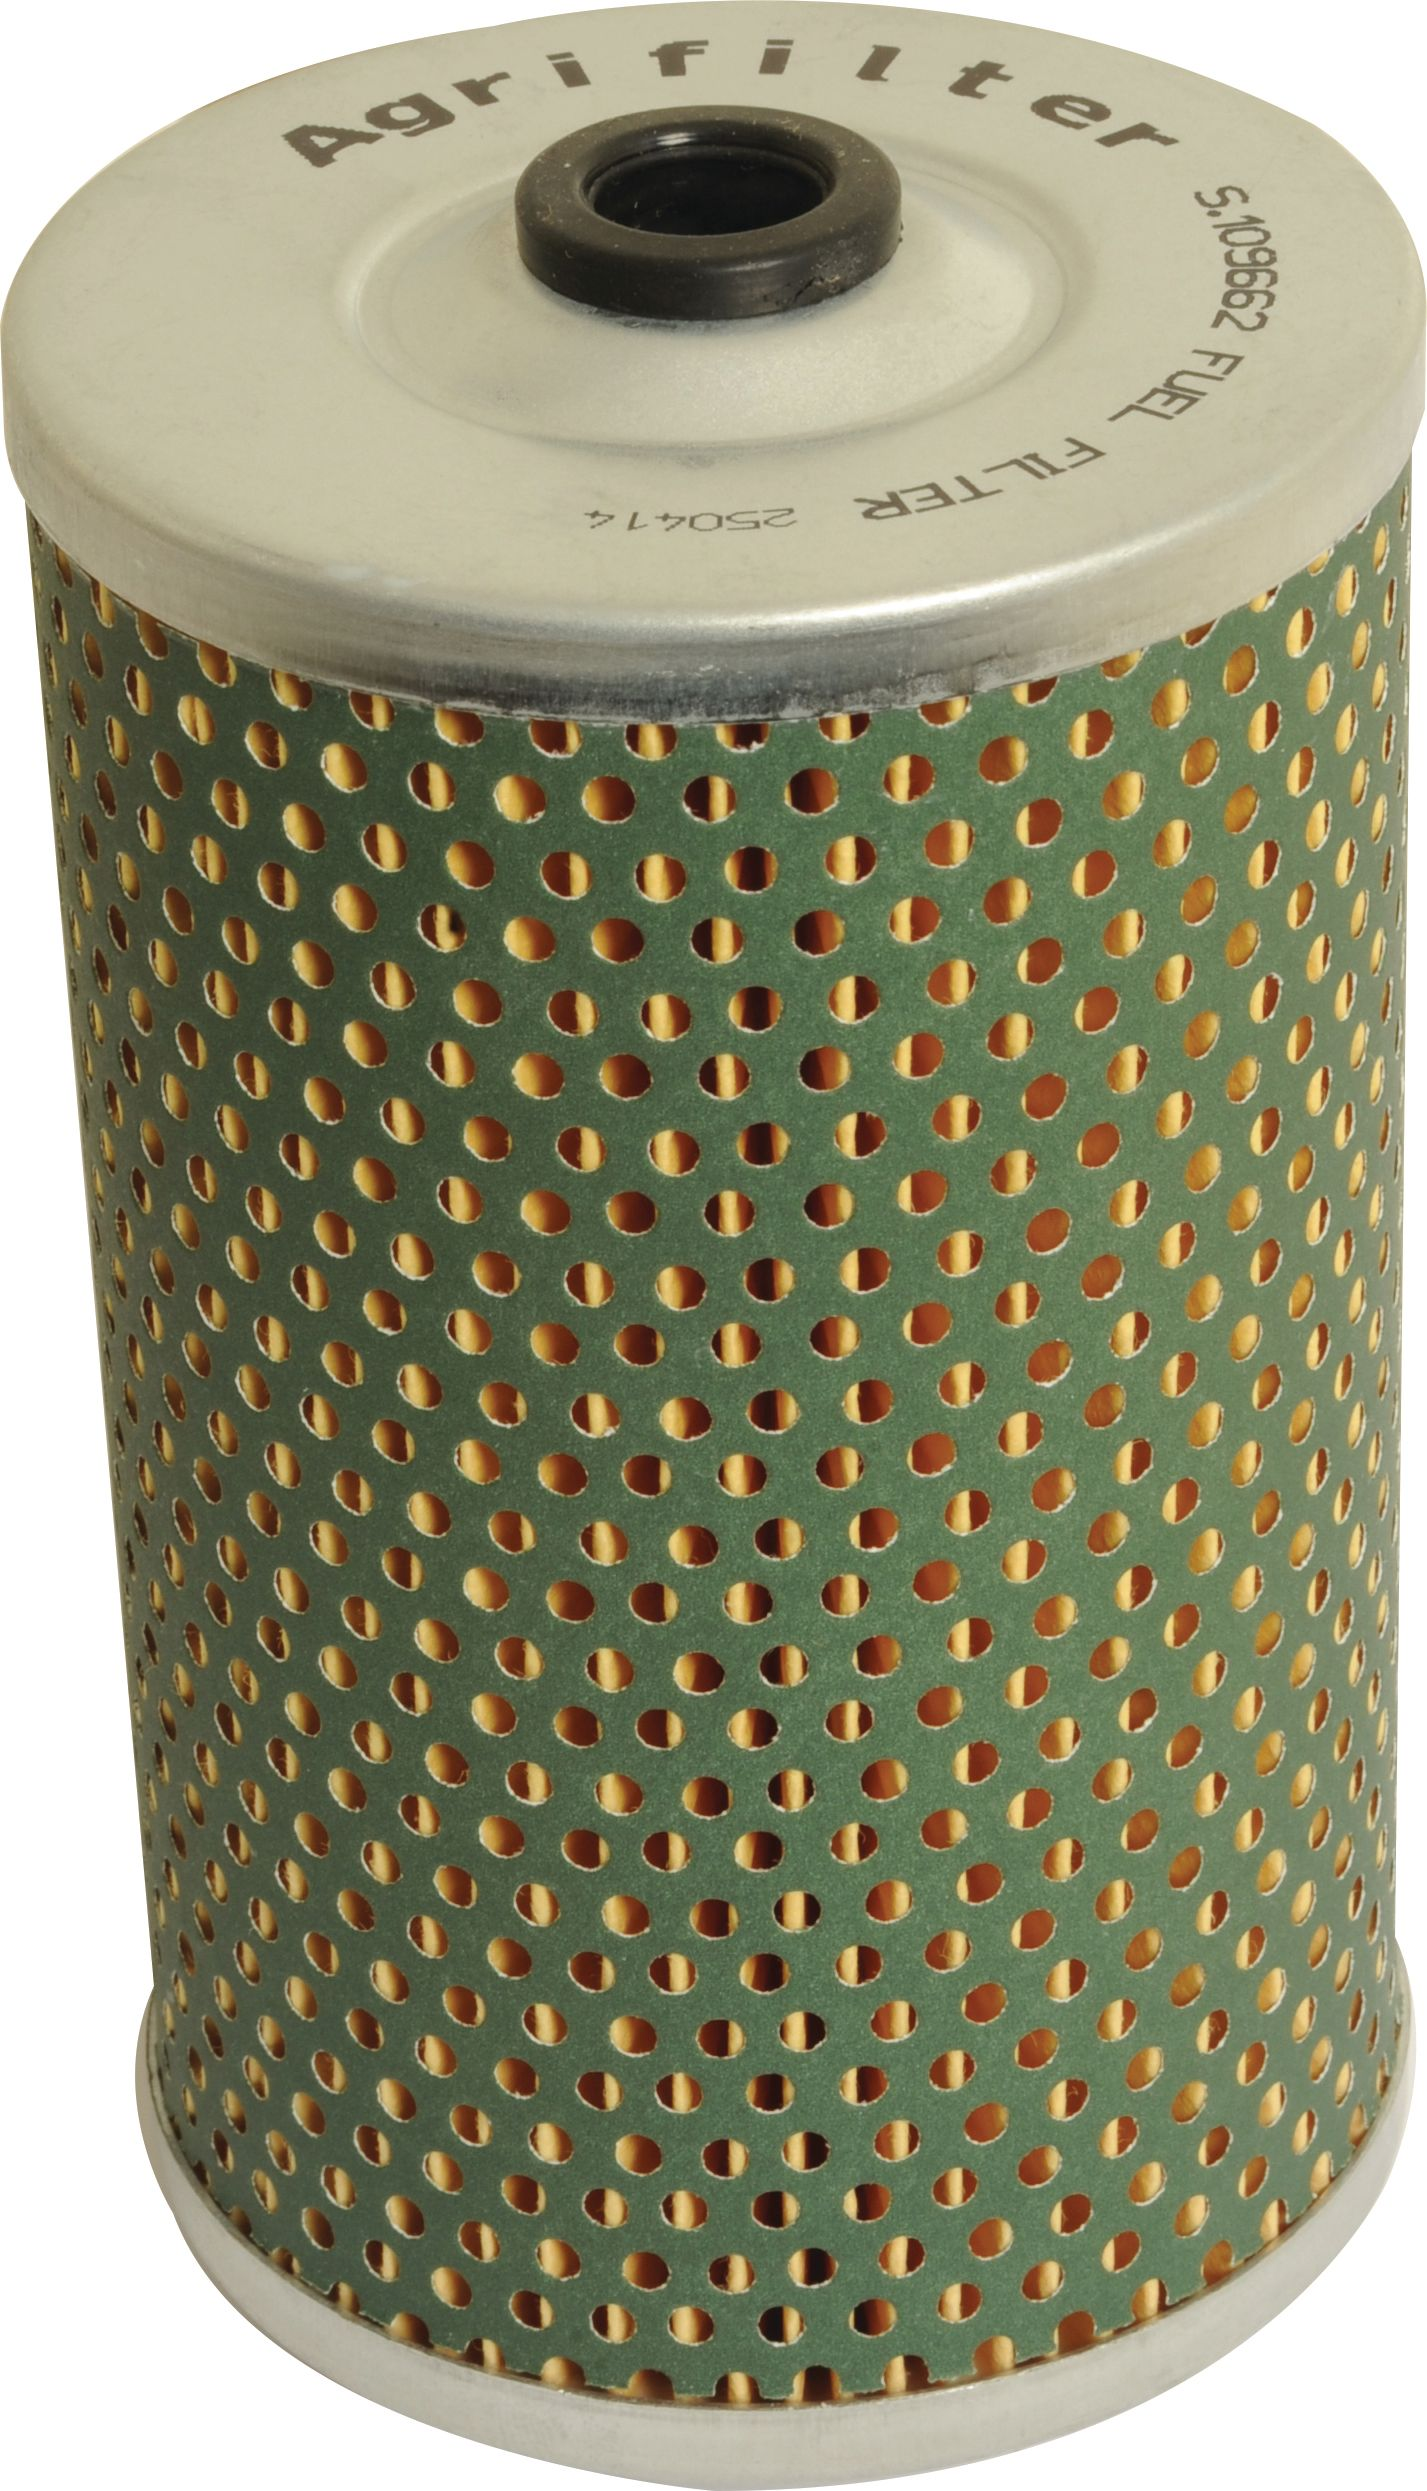 DEUTZ-FAHR FUEL FILTER